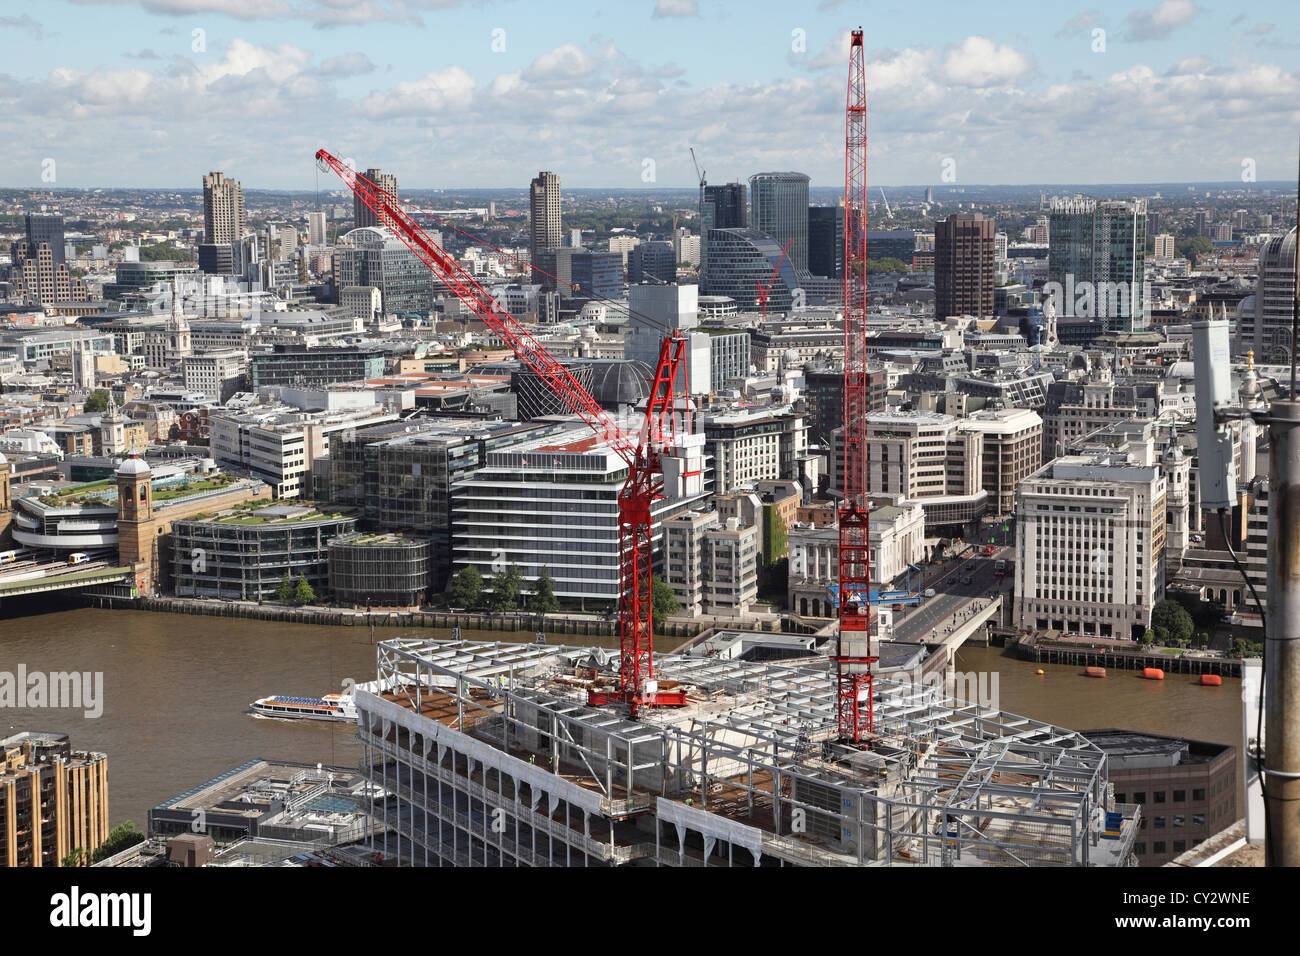 Tower cranes on the construction site at London Bridge Place south of the River Thames in London - Stock Image